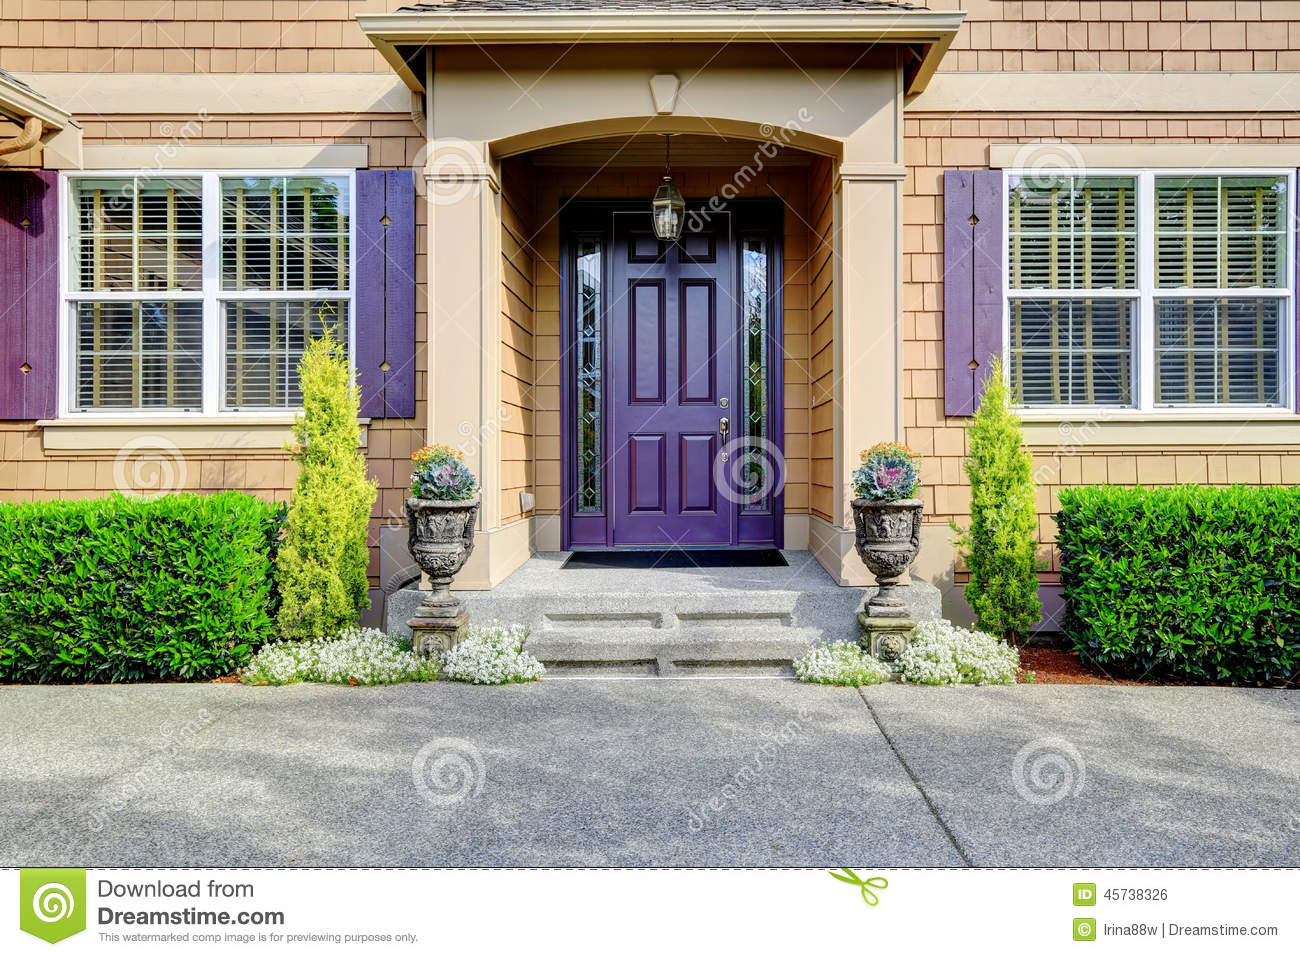 957 #77AA22 Luxury House Exterior. Entrance Porch With Purple Door Stock Photo  wallpaper Purple Front Doors 47051300